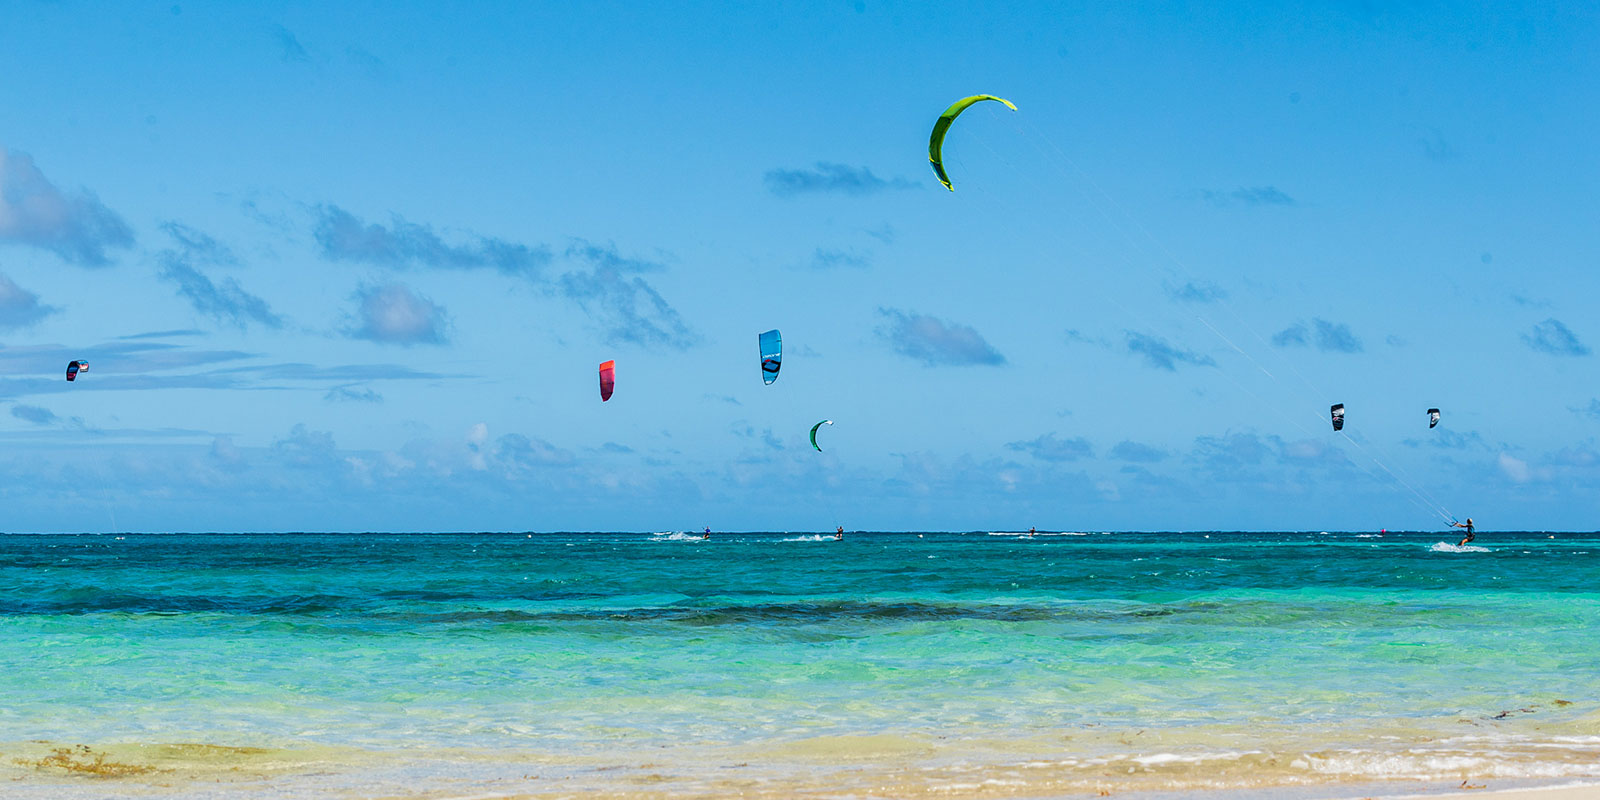 kiting in antigua at 40knots